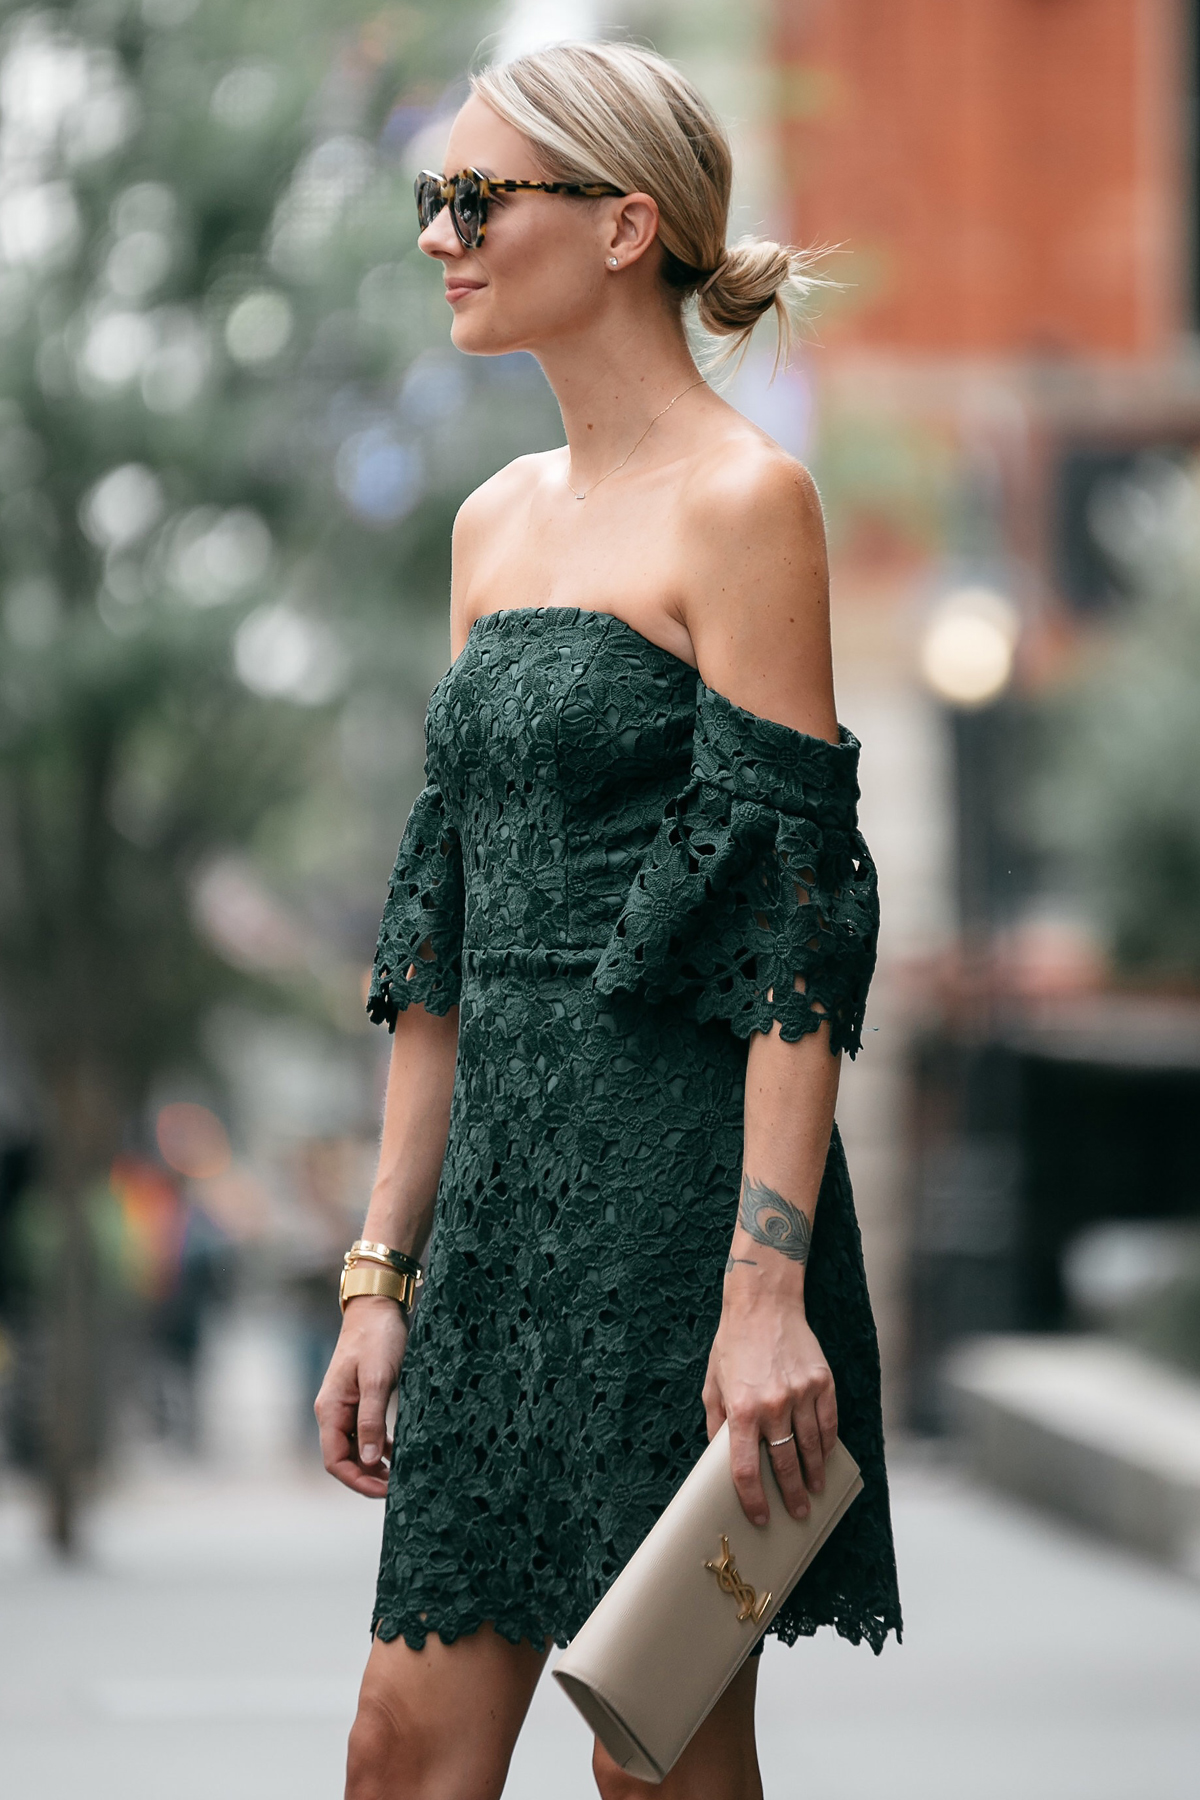 Blonde Woman Wearing Club Monaco Off-the-Shoulder Green Lace Dress Saint Laurent Monogram Clutch Fashion Jackson Dallas Blogger Fashion Blogger Street Style